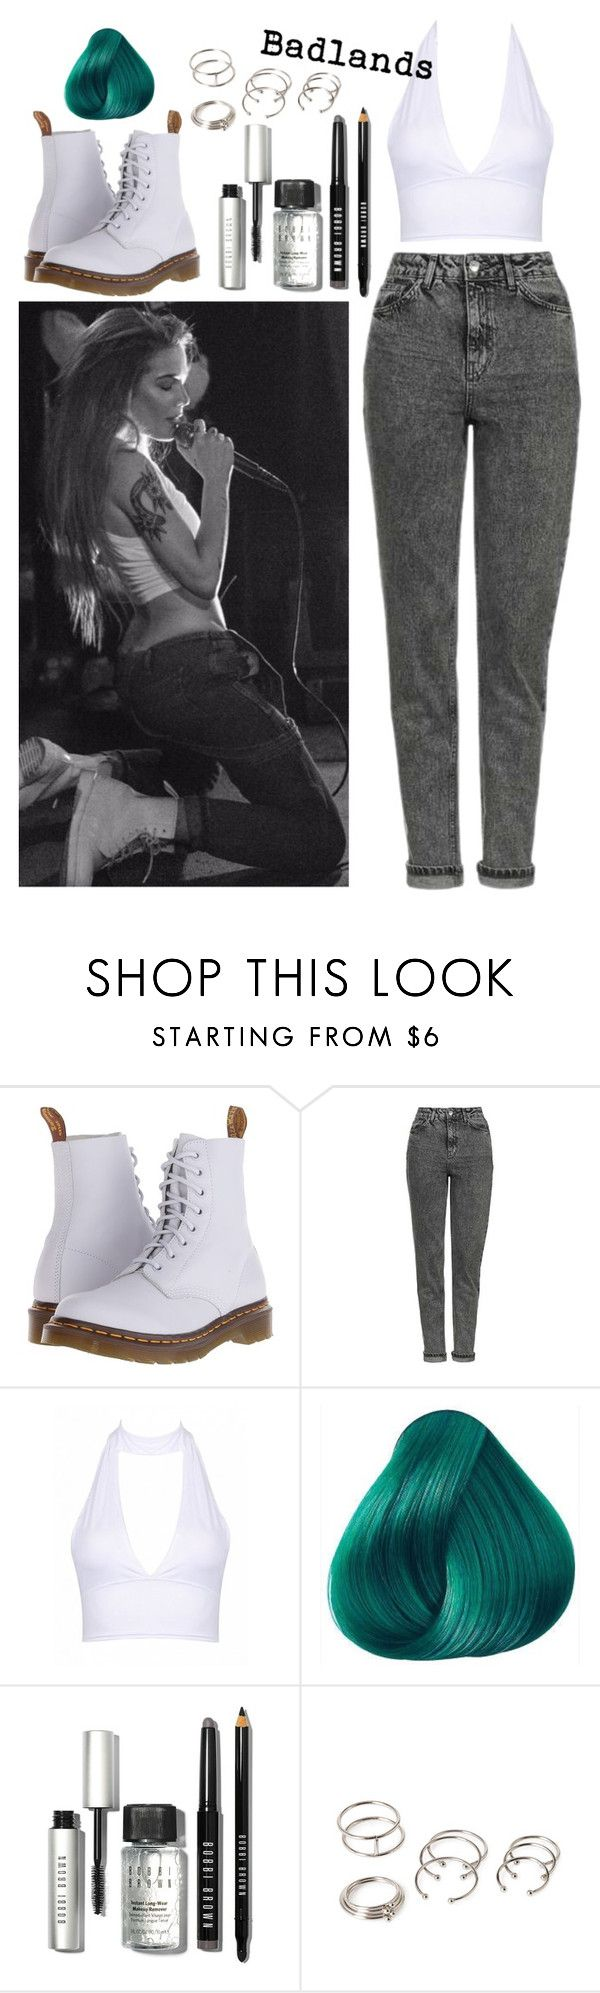 """""""Halsey Style Steal"""" by marymh ❤ liked on Polyvore featuring Dr. Martens, Topshop, Bobbi Brown Cosmetics, Forever 21, denim, Docs, teal, Halter and halsey"""